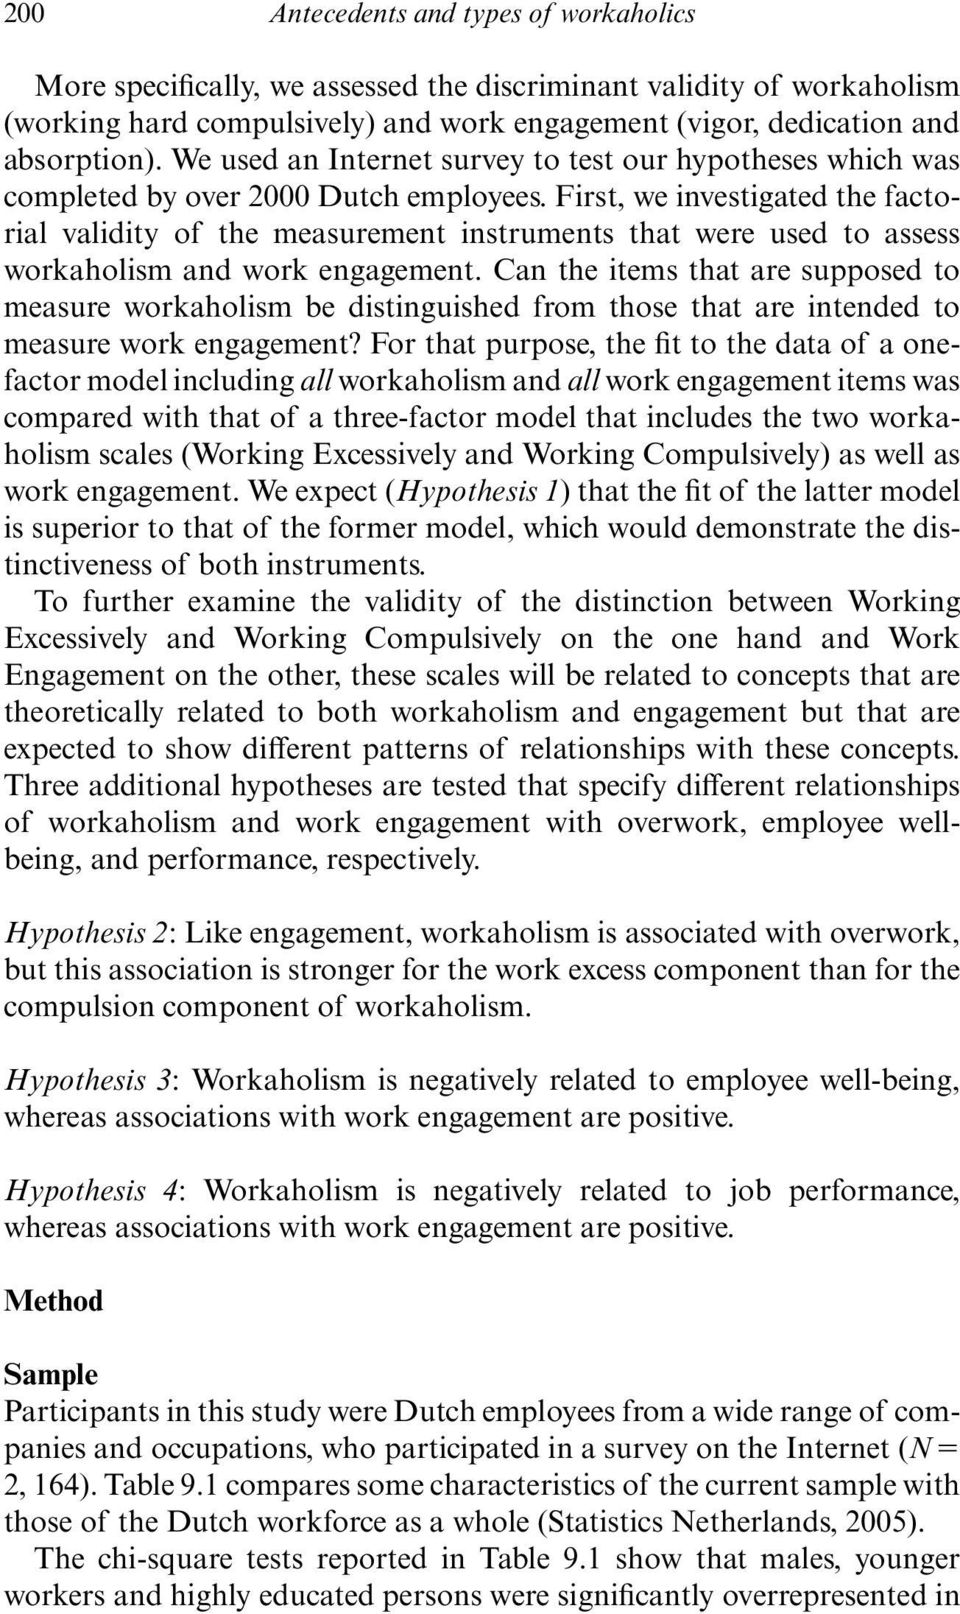 First, we investigated the factorial validity of the measurement instruments that were used to assess workaholism and work engagement.